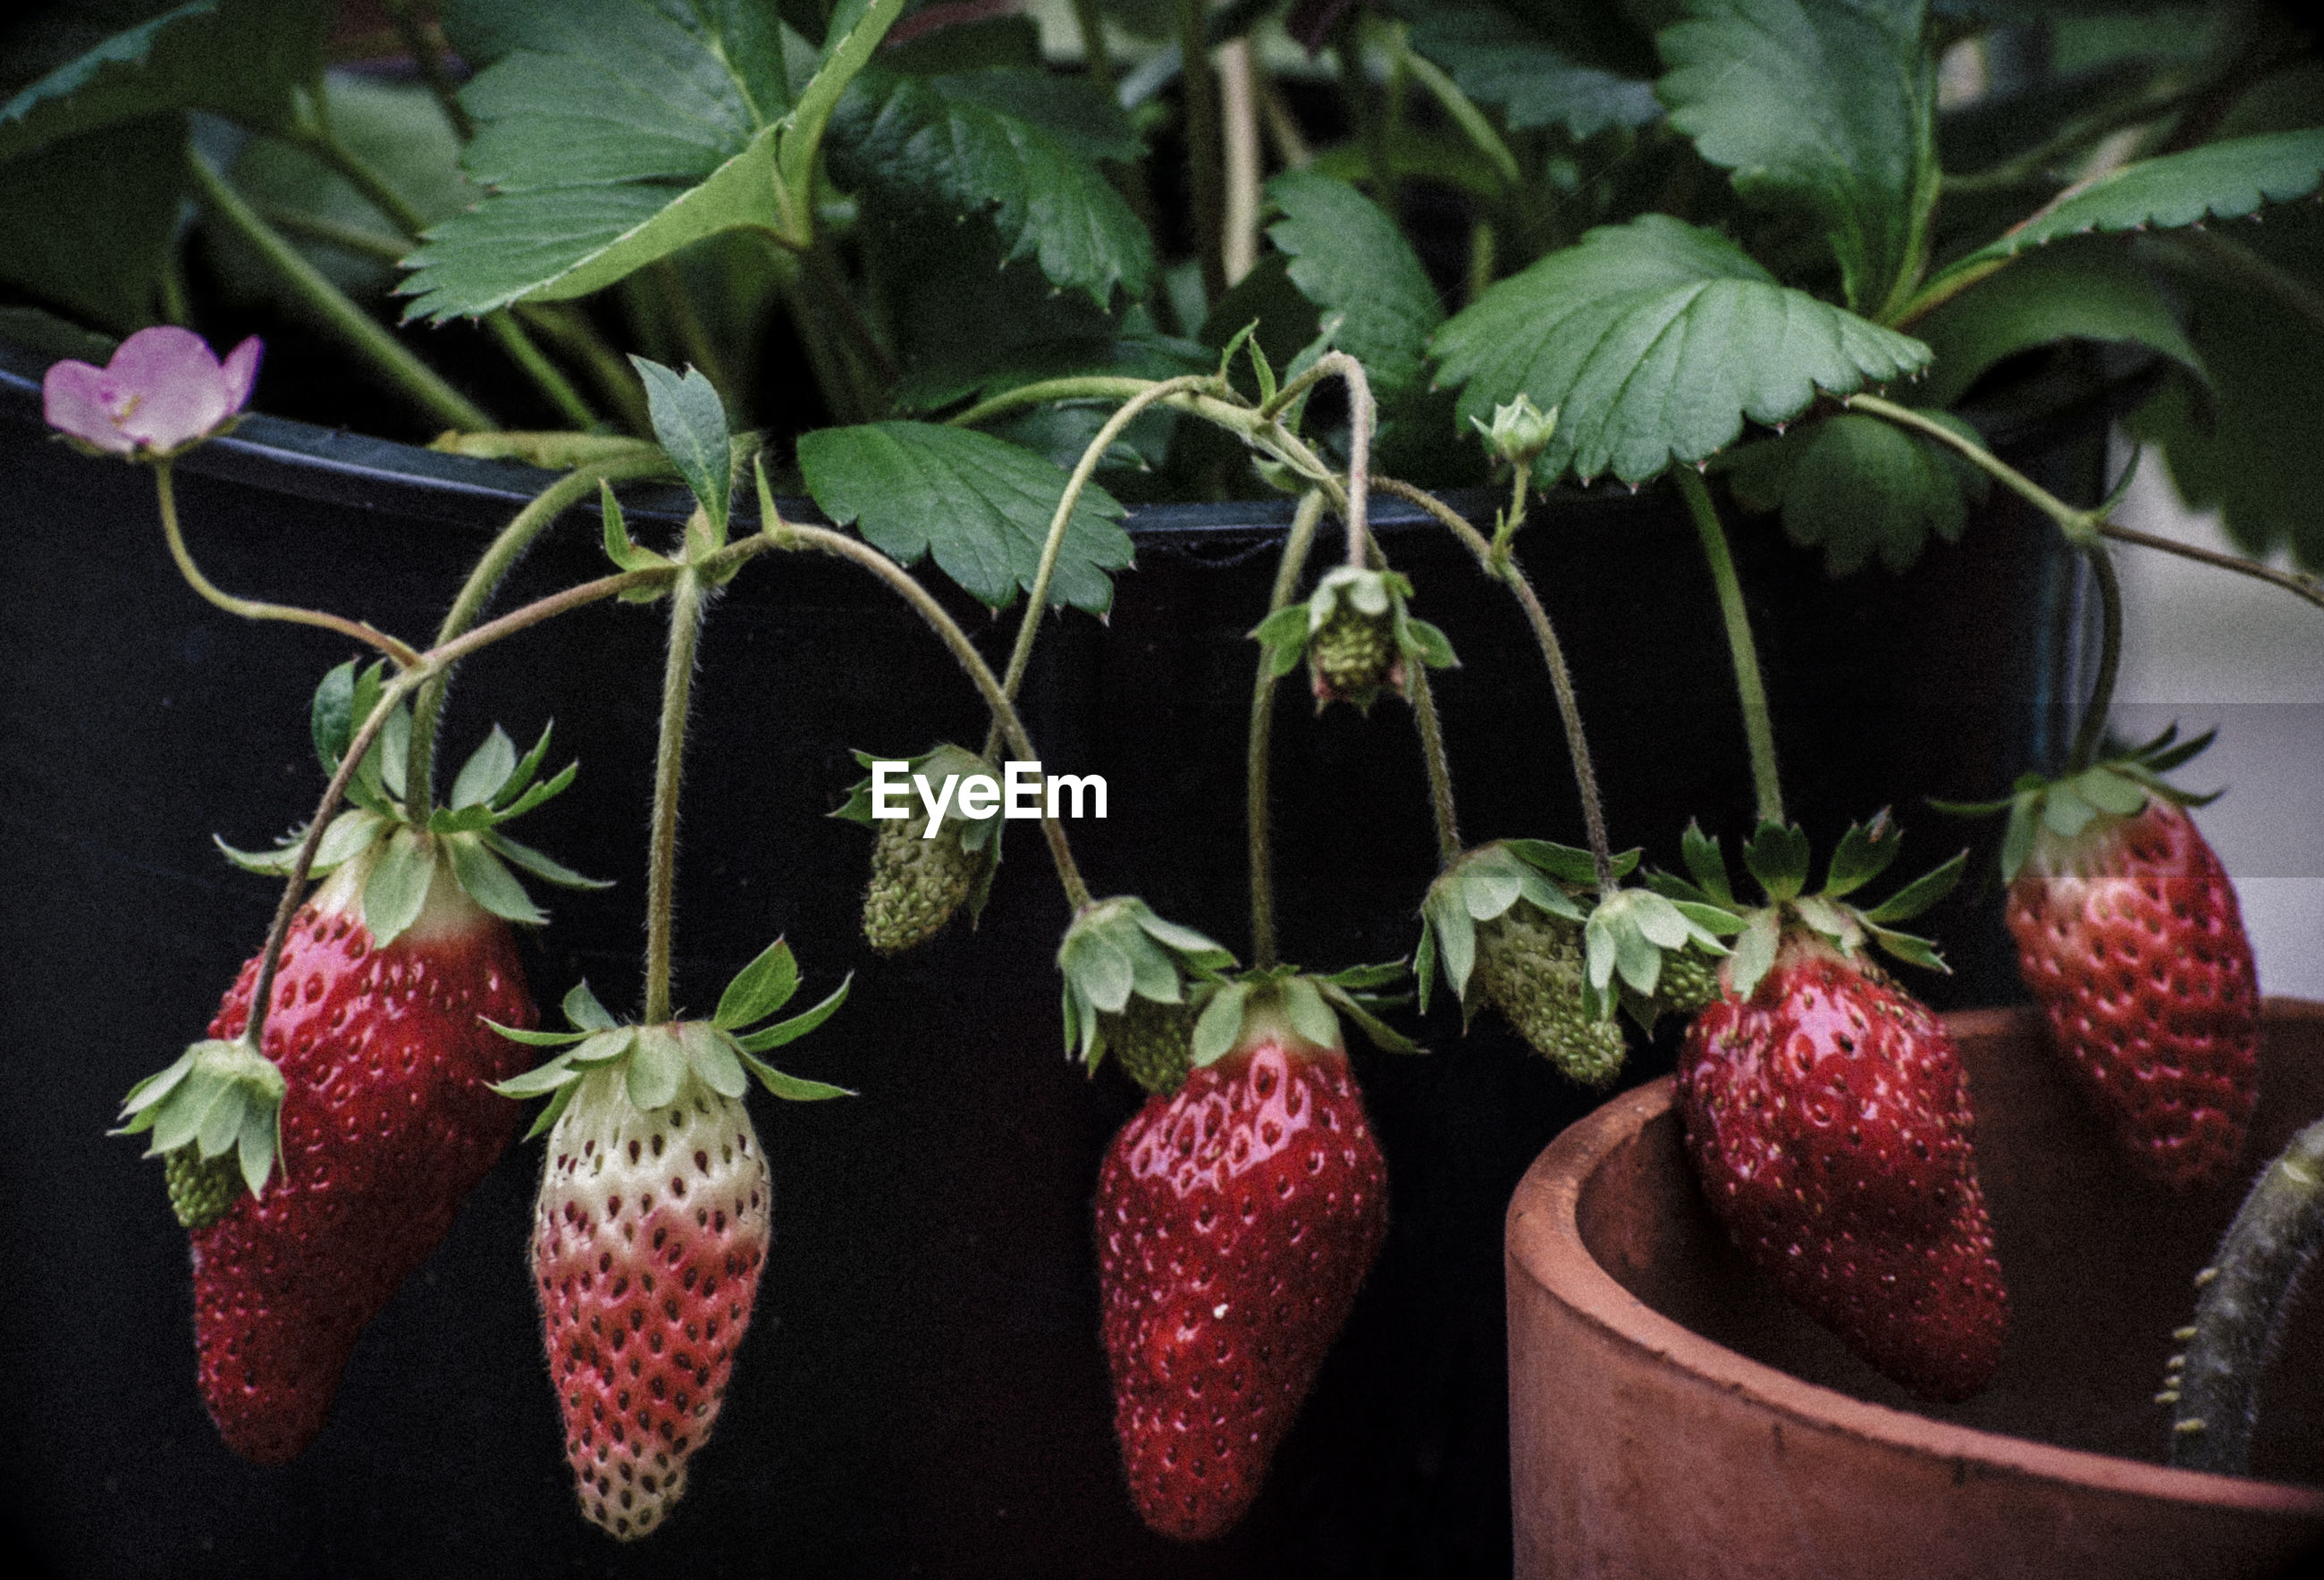 Close-up of strawberries growing on plant